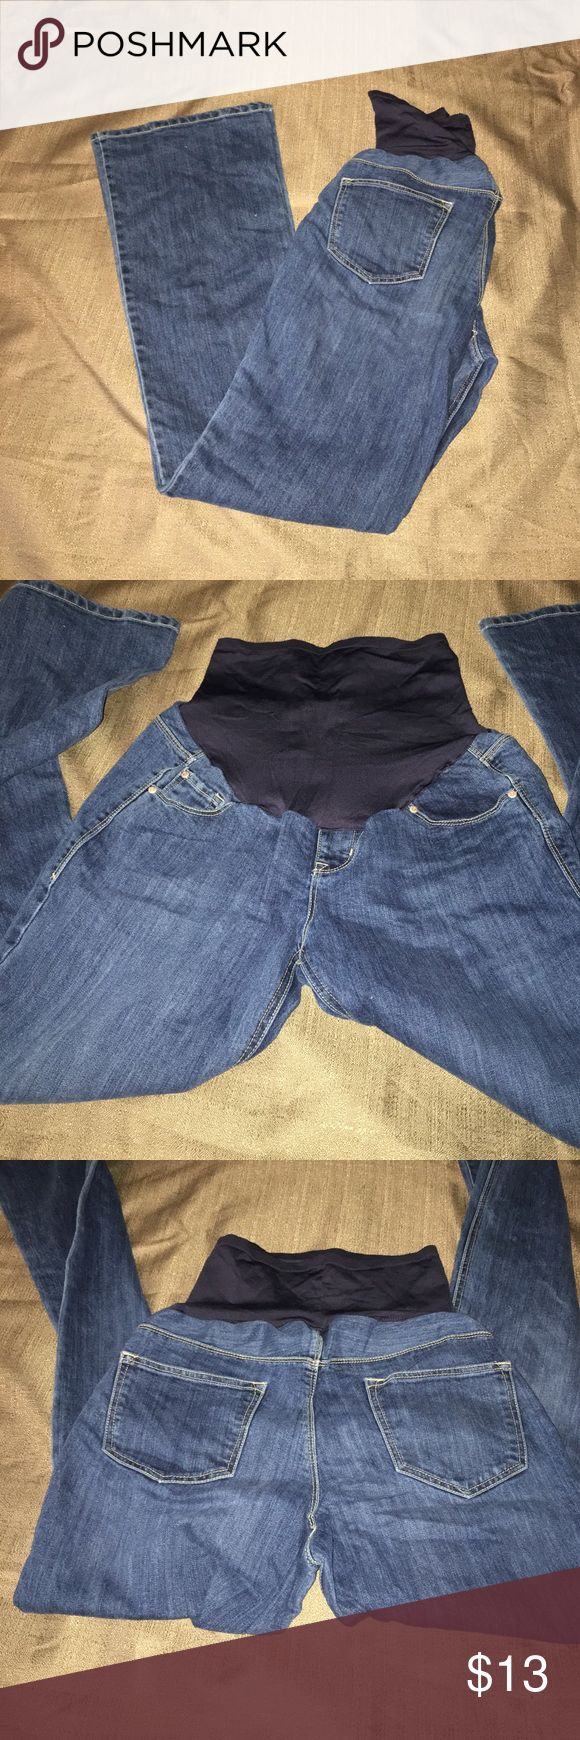 Old navy Maternity Jeans Old Navy Maternity Jeans in very very GUC - size: 6 Regular Old Navy Jeans Flare & Wide Leg